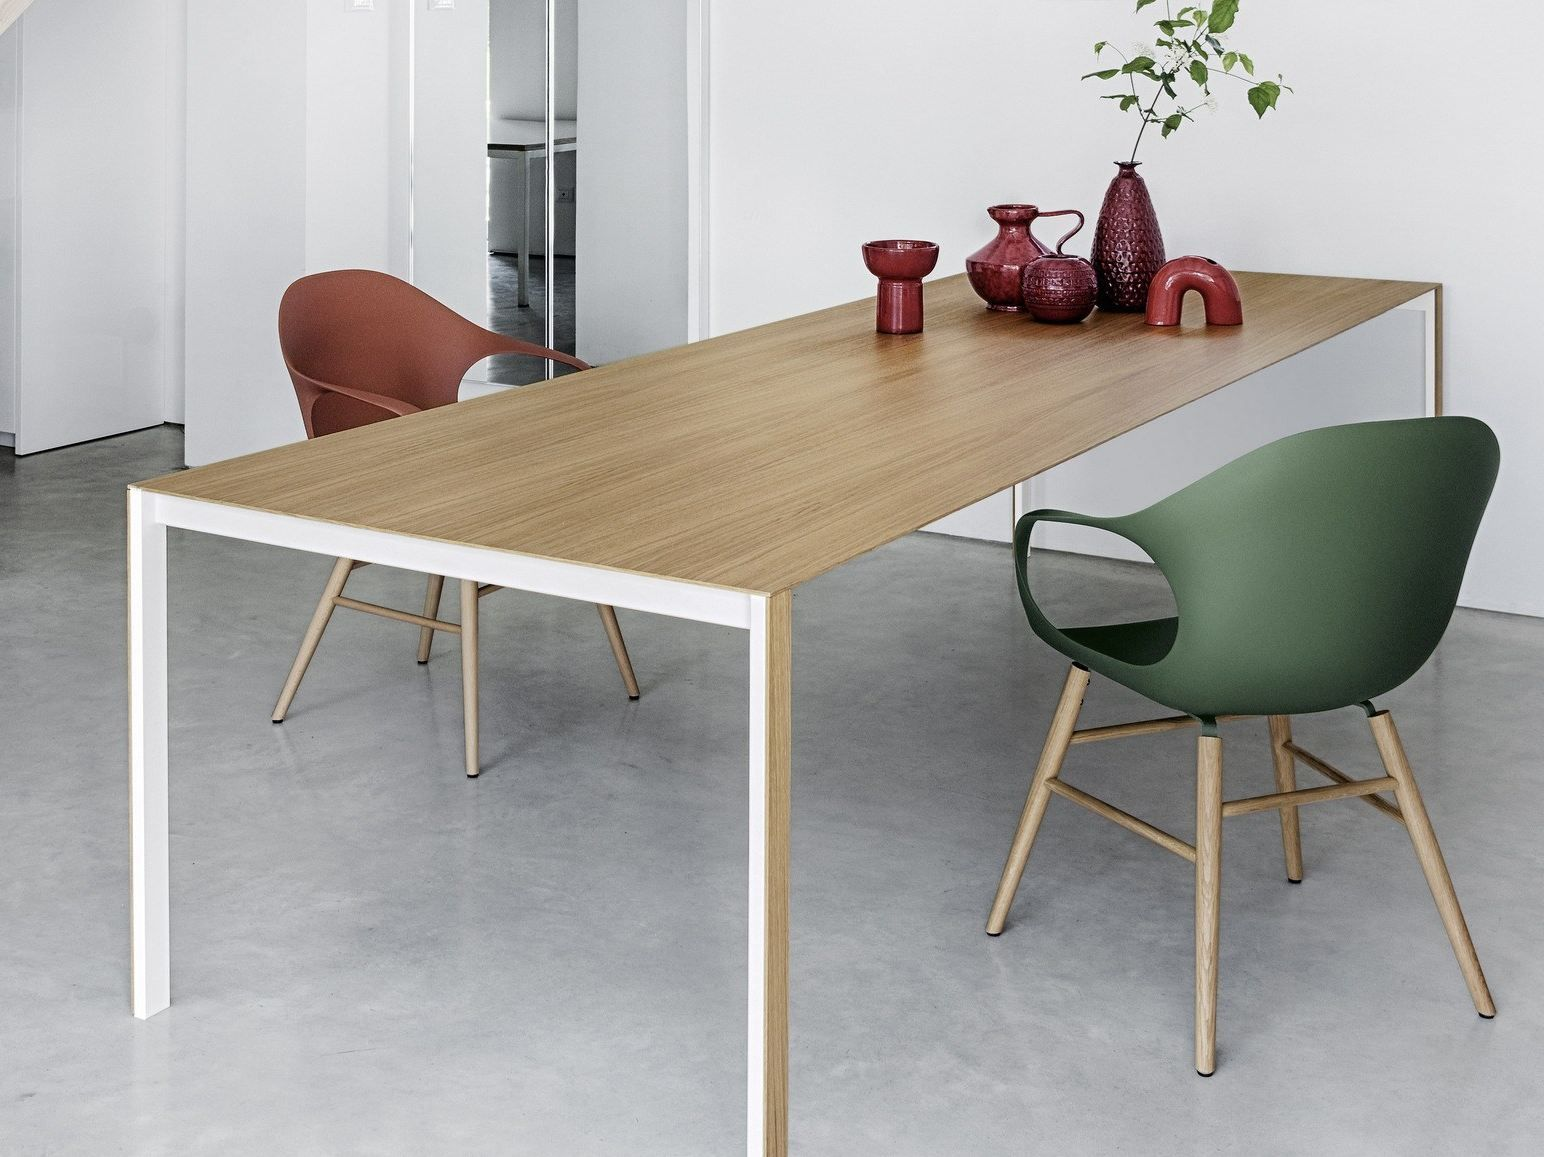 Rectangular wooden table thin k wood by kristalia design luciano